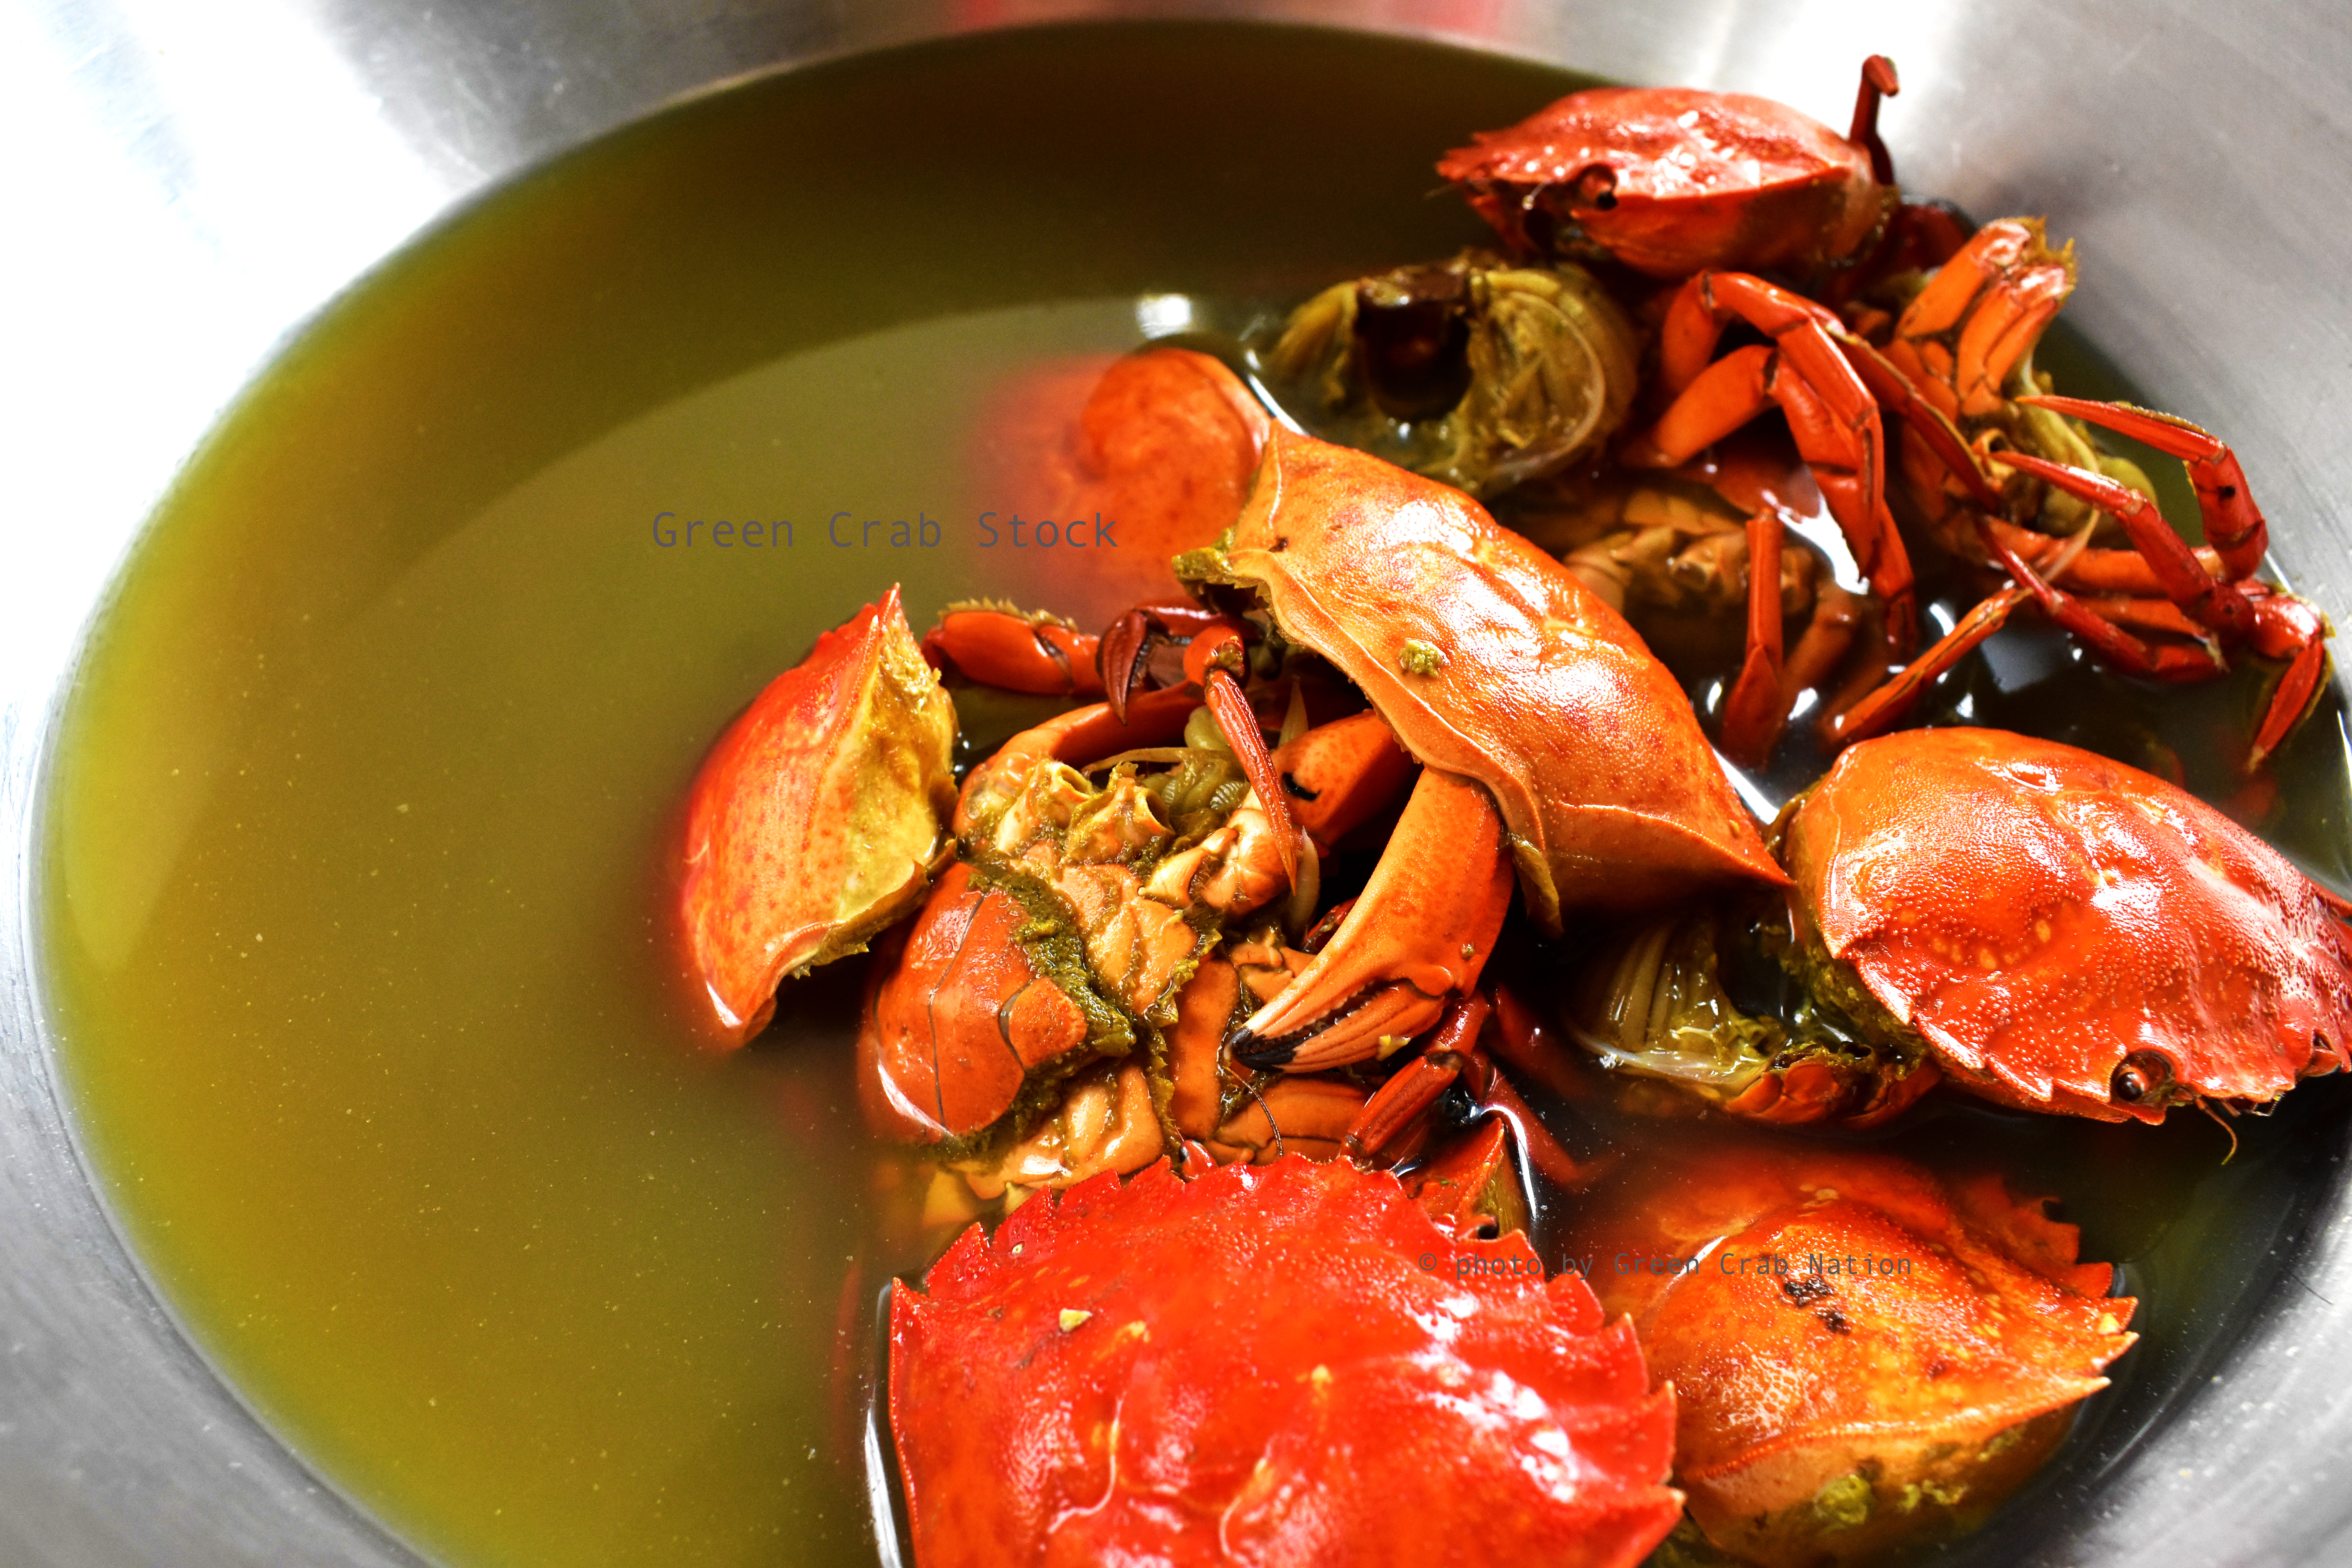 ©_Home_4_Green Crab Stock_DSC_0463